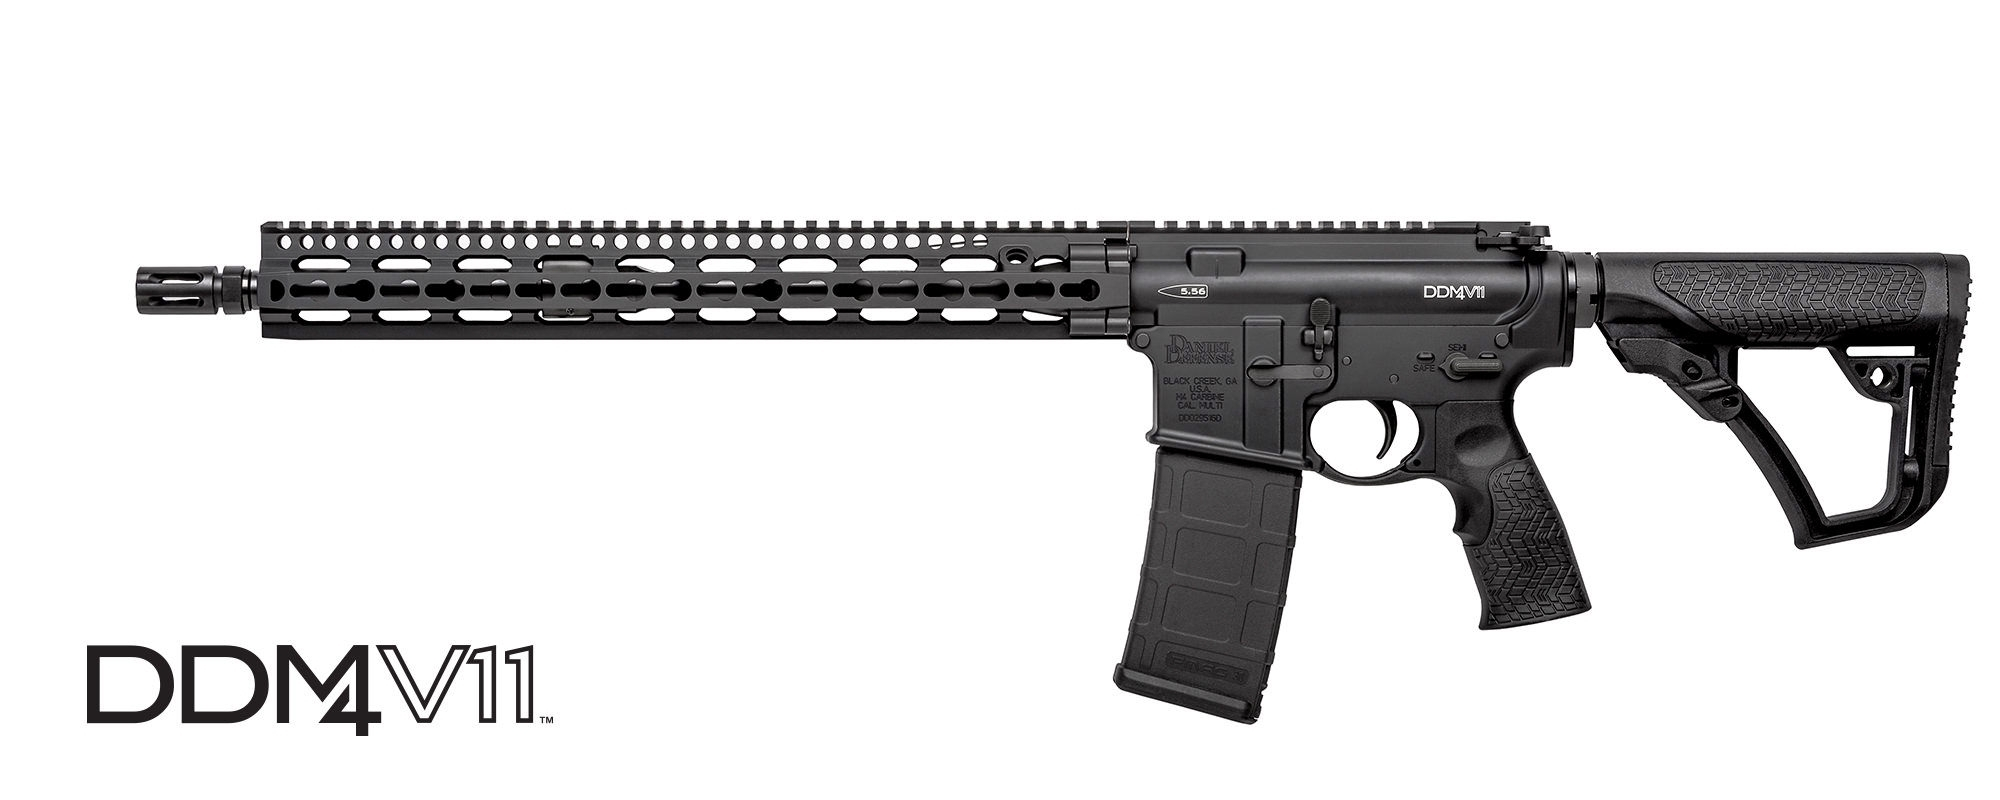 "DANIEL DEFENSE M4 V11 SEMI-AUTO CARBINE, 223 (5.56MM NATO), 16"" BBL, BLACK, NEW"